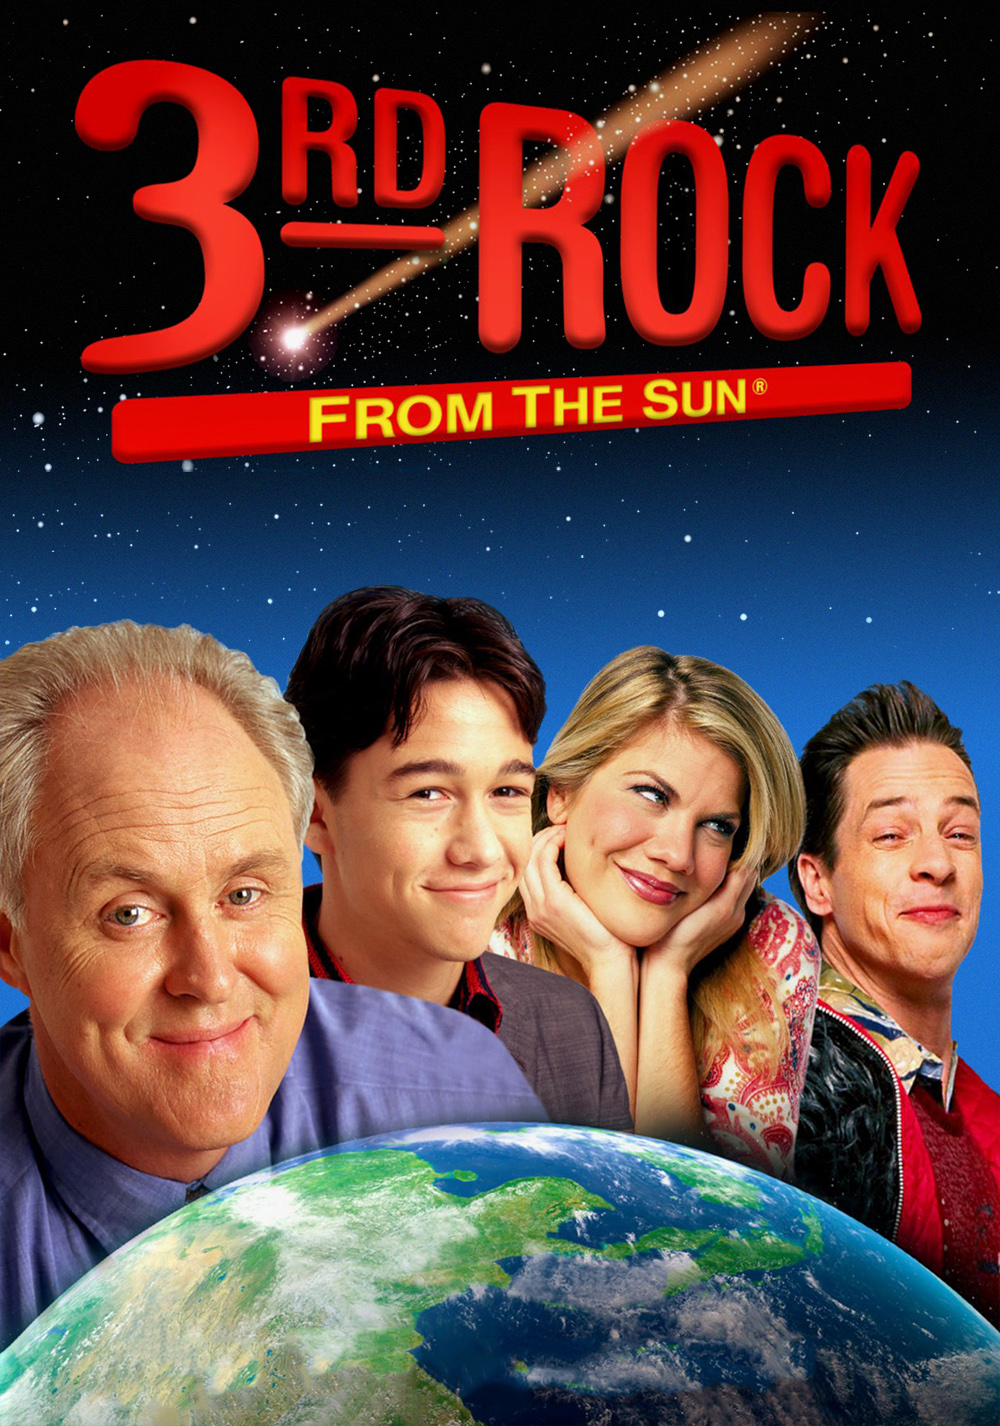 3rd Rock From The Sun Backgrounds, Compatible - PC, Mobile, Gadgets| 1000x1426 px